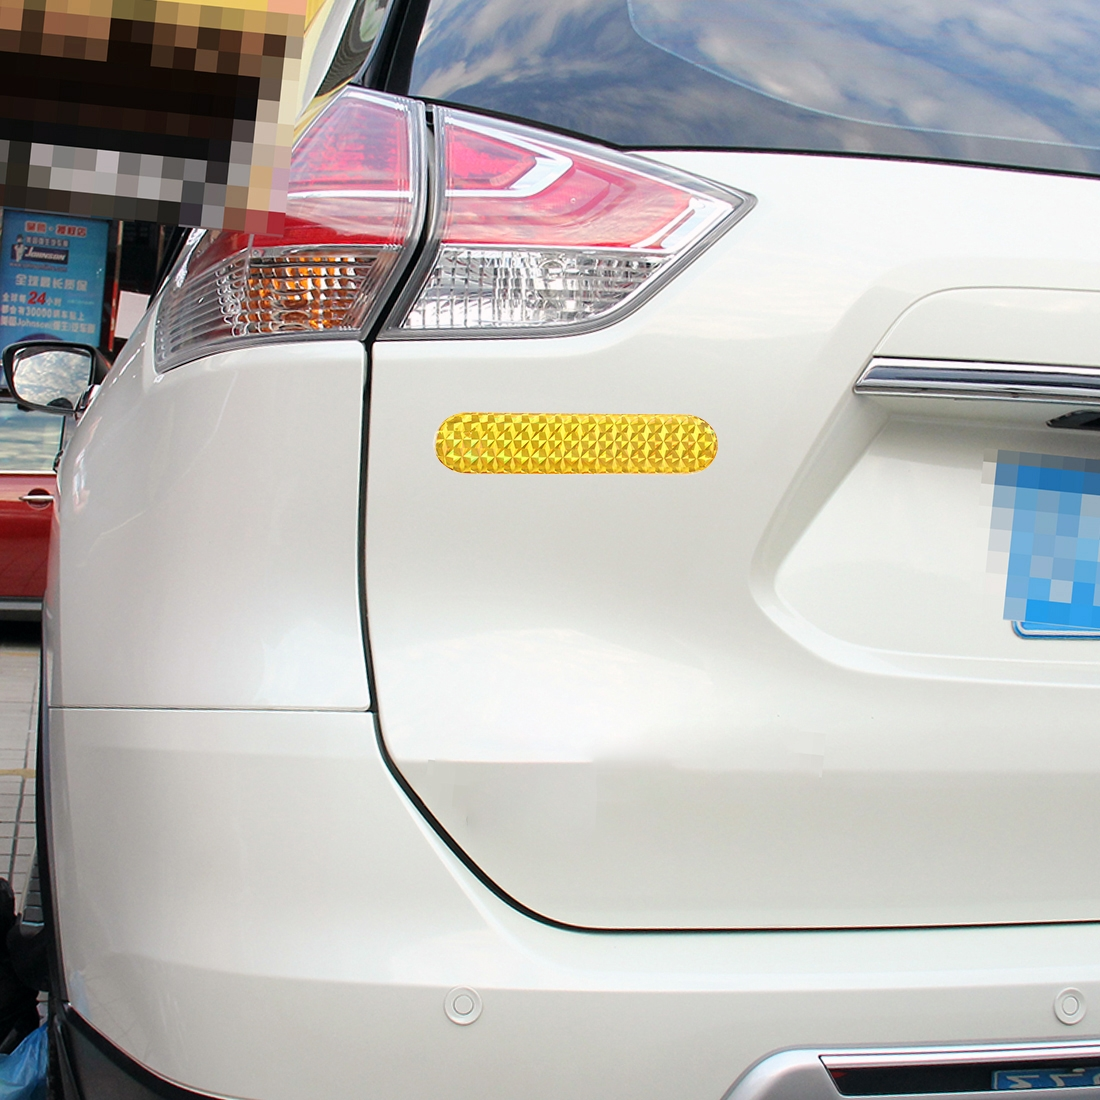 2 PCS High-brightness Laser Reflective Strip Warning Tape Decal Car Reflective Stickers Safety Mark (Yellow)